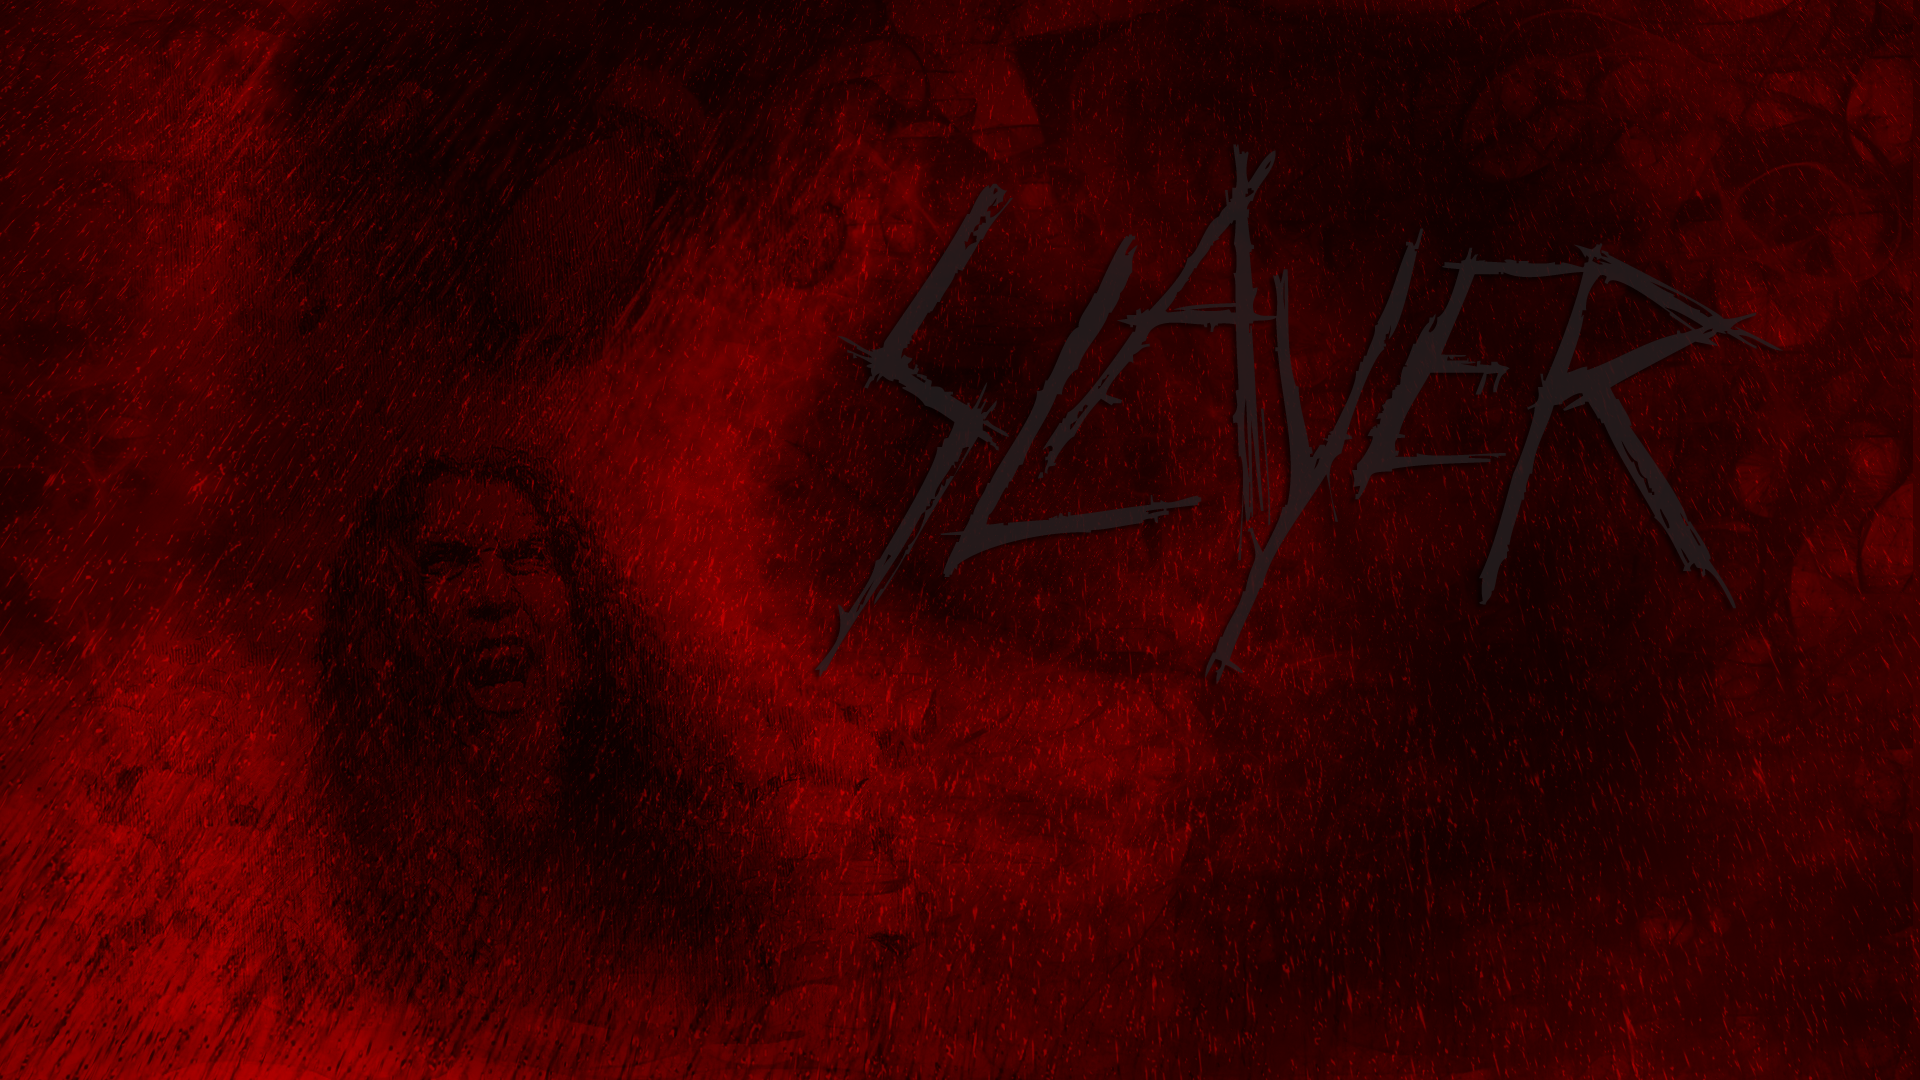 slayer wallpapers backgrounds